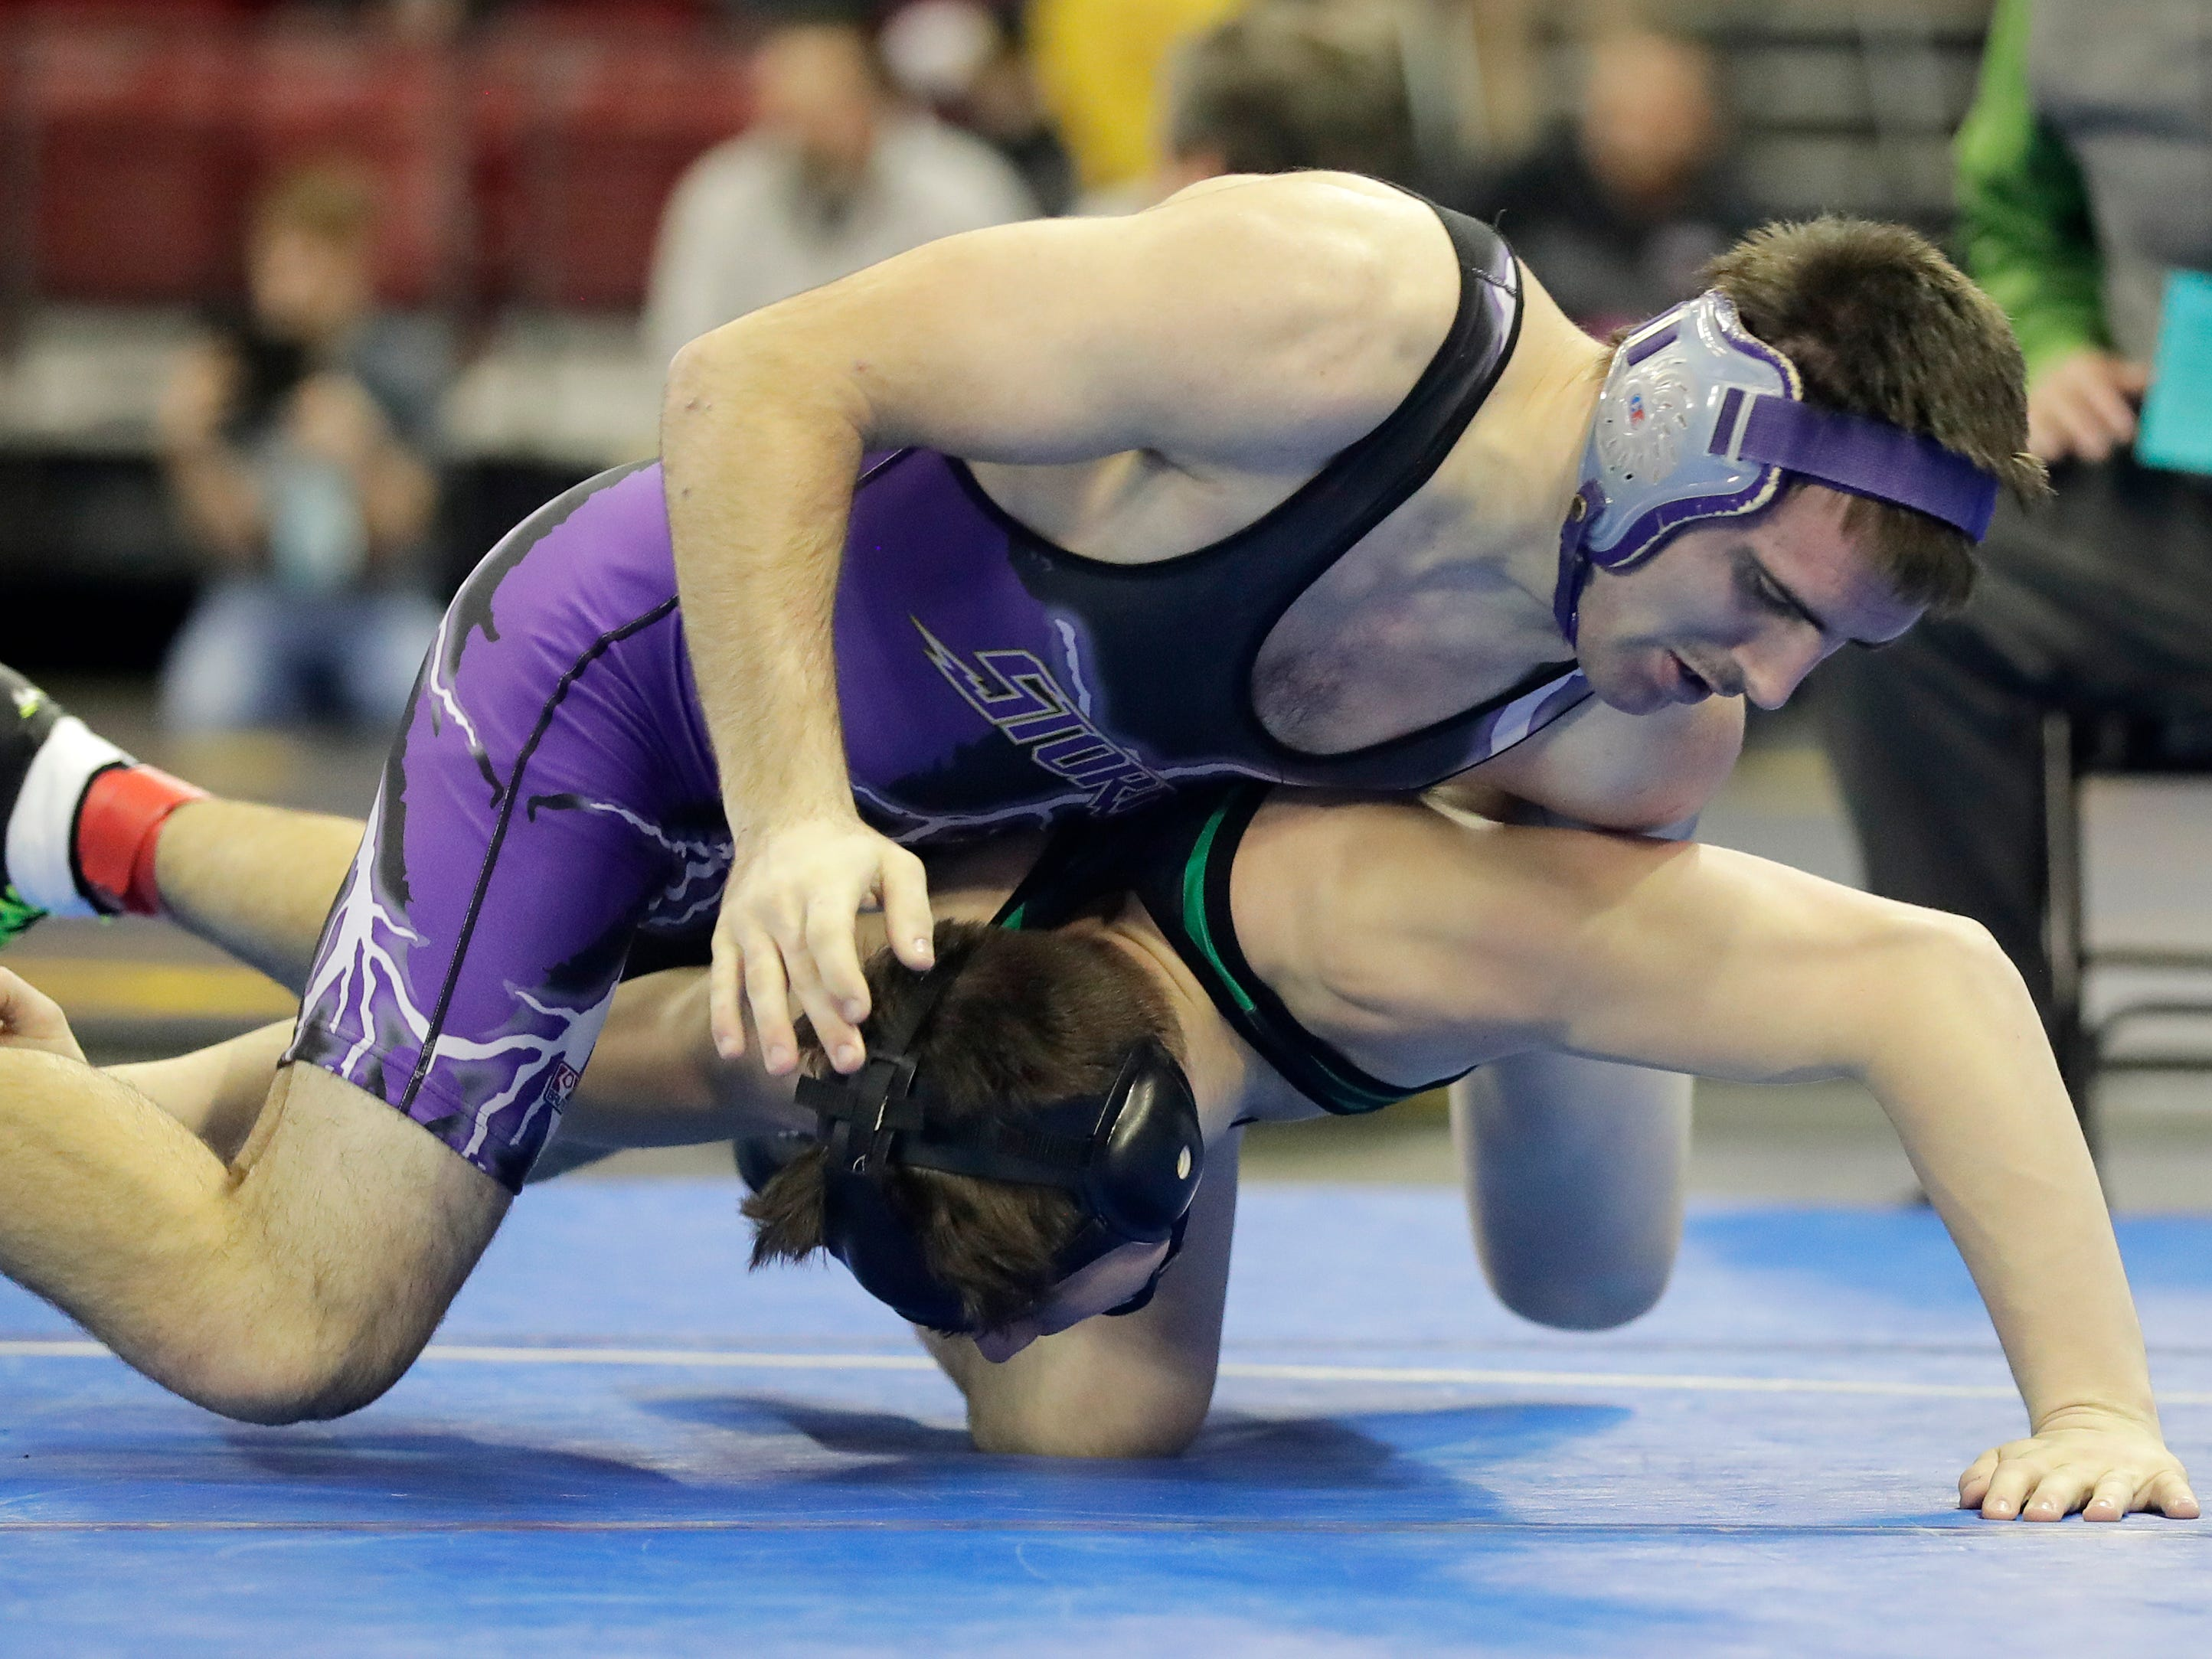 Kewaunee's Travis Reinke wrestles Coleman's Shamus McLain in a Division 3 170-pound preliminary match at the WIAA state individual wrestling tournament at the Kohl Center on Thursday, February 21, 2019 in Madison, Wis.